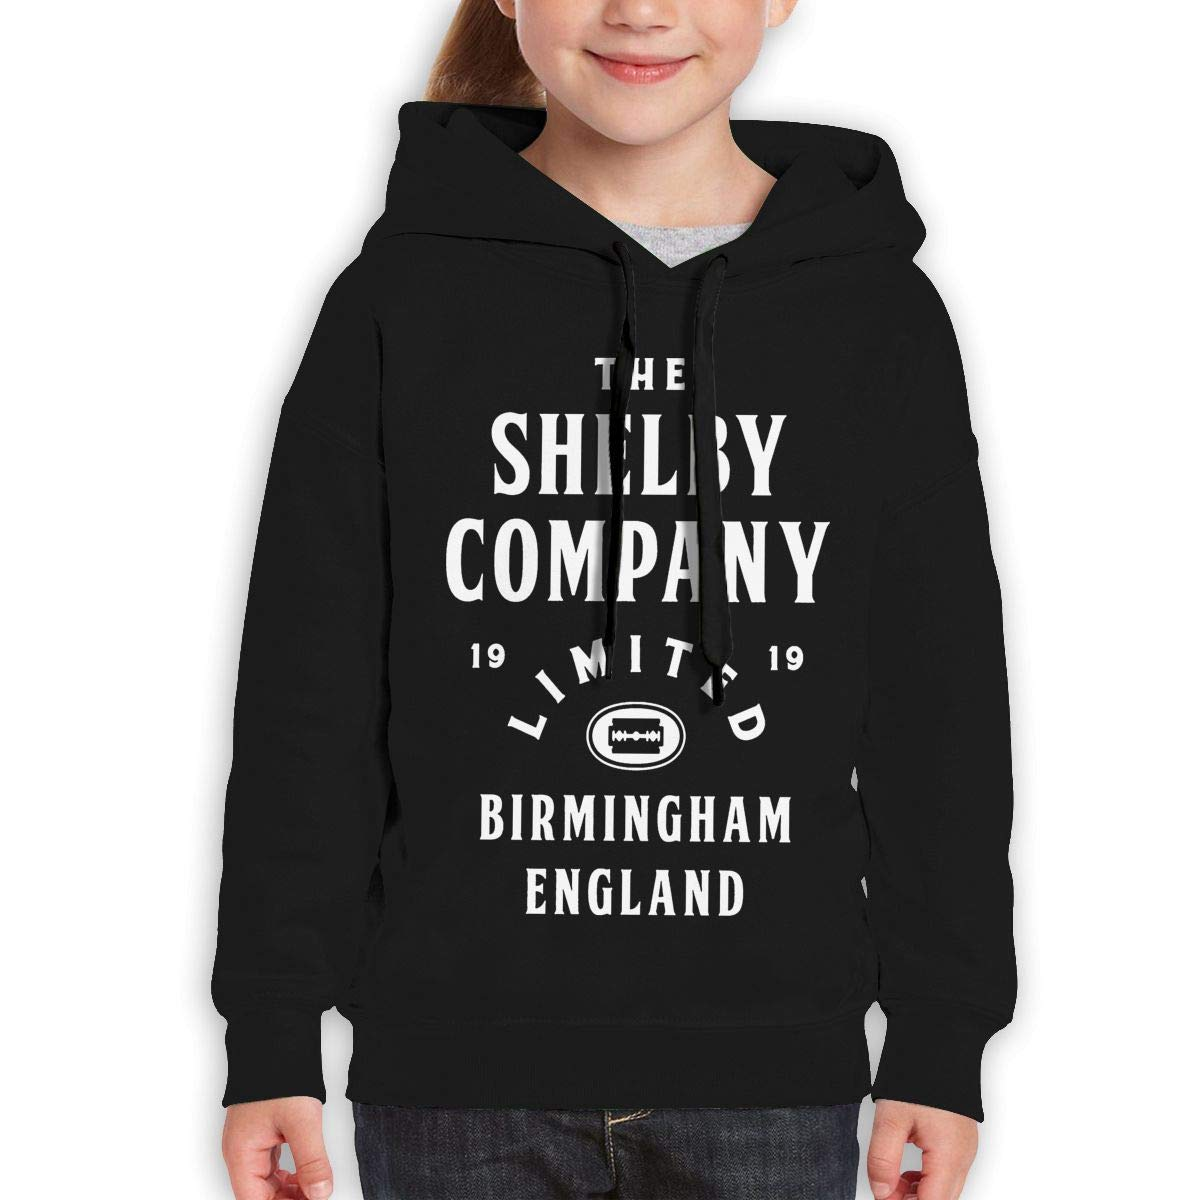 Boys Girls The Shelby Company Limited Birmingham England Teen Youth Hoodie Black